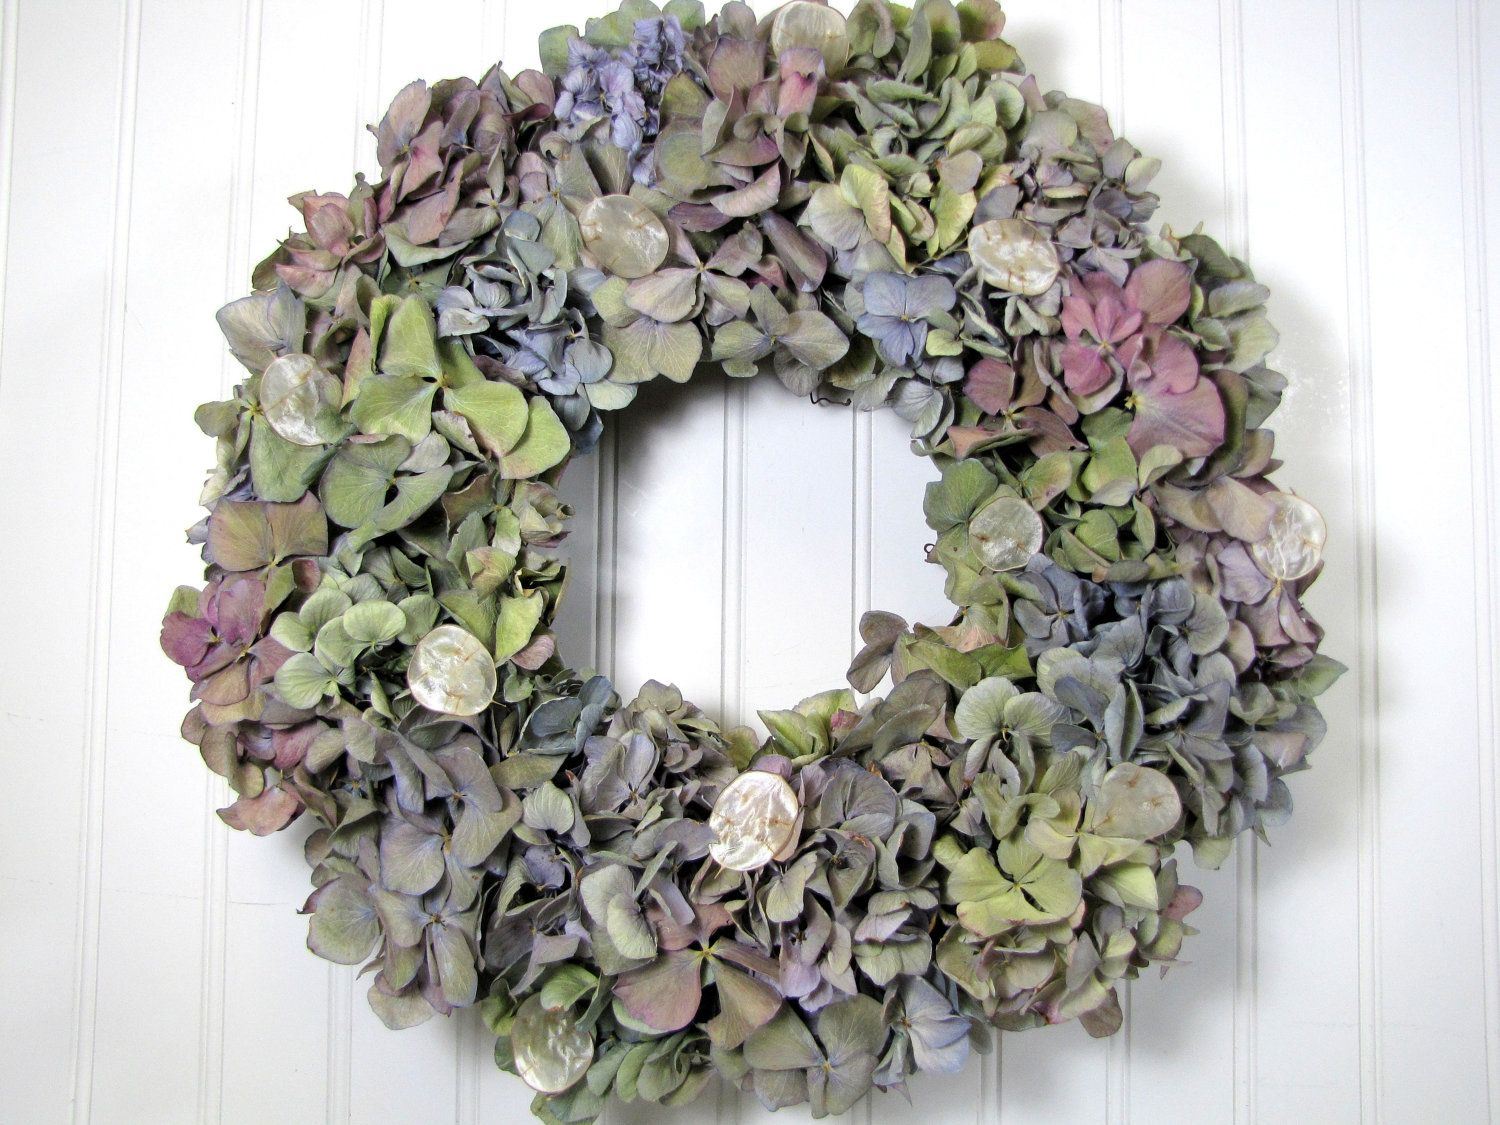 Herfstkrans Maken Met Hortensia How To Naturally Dry Hydrangeas Kransen Pinterest Hortensia